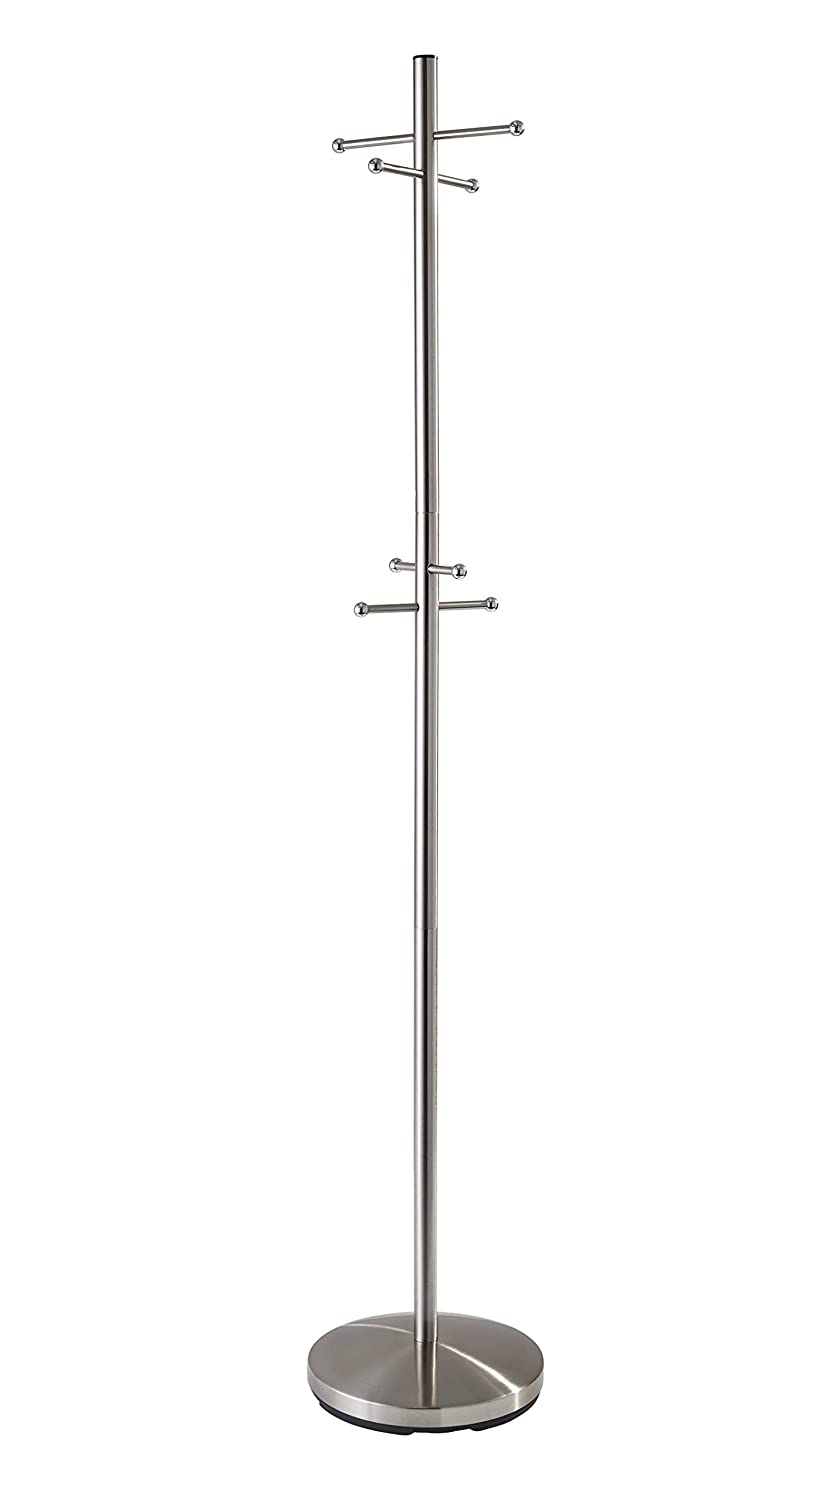 Adesso Coat Rack, Steel